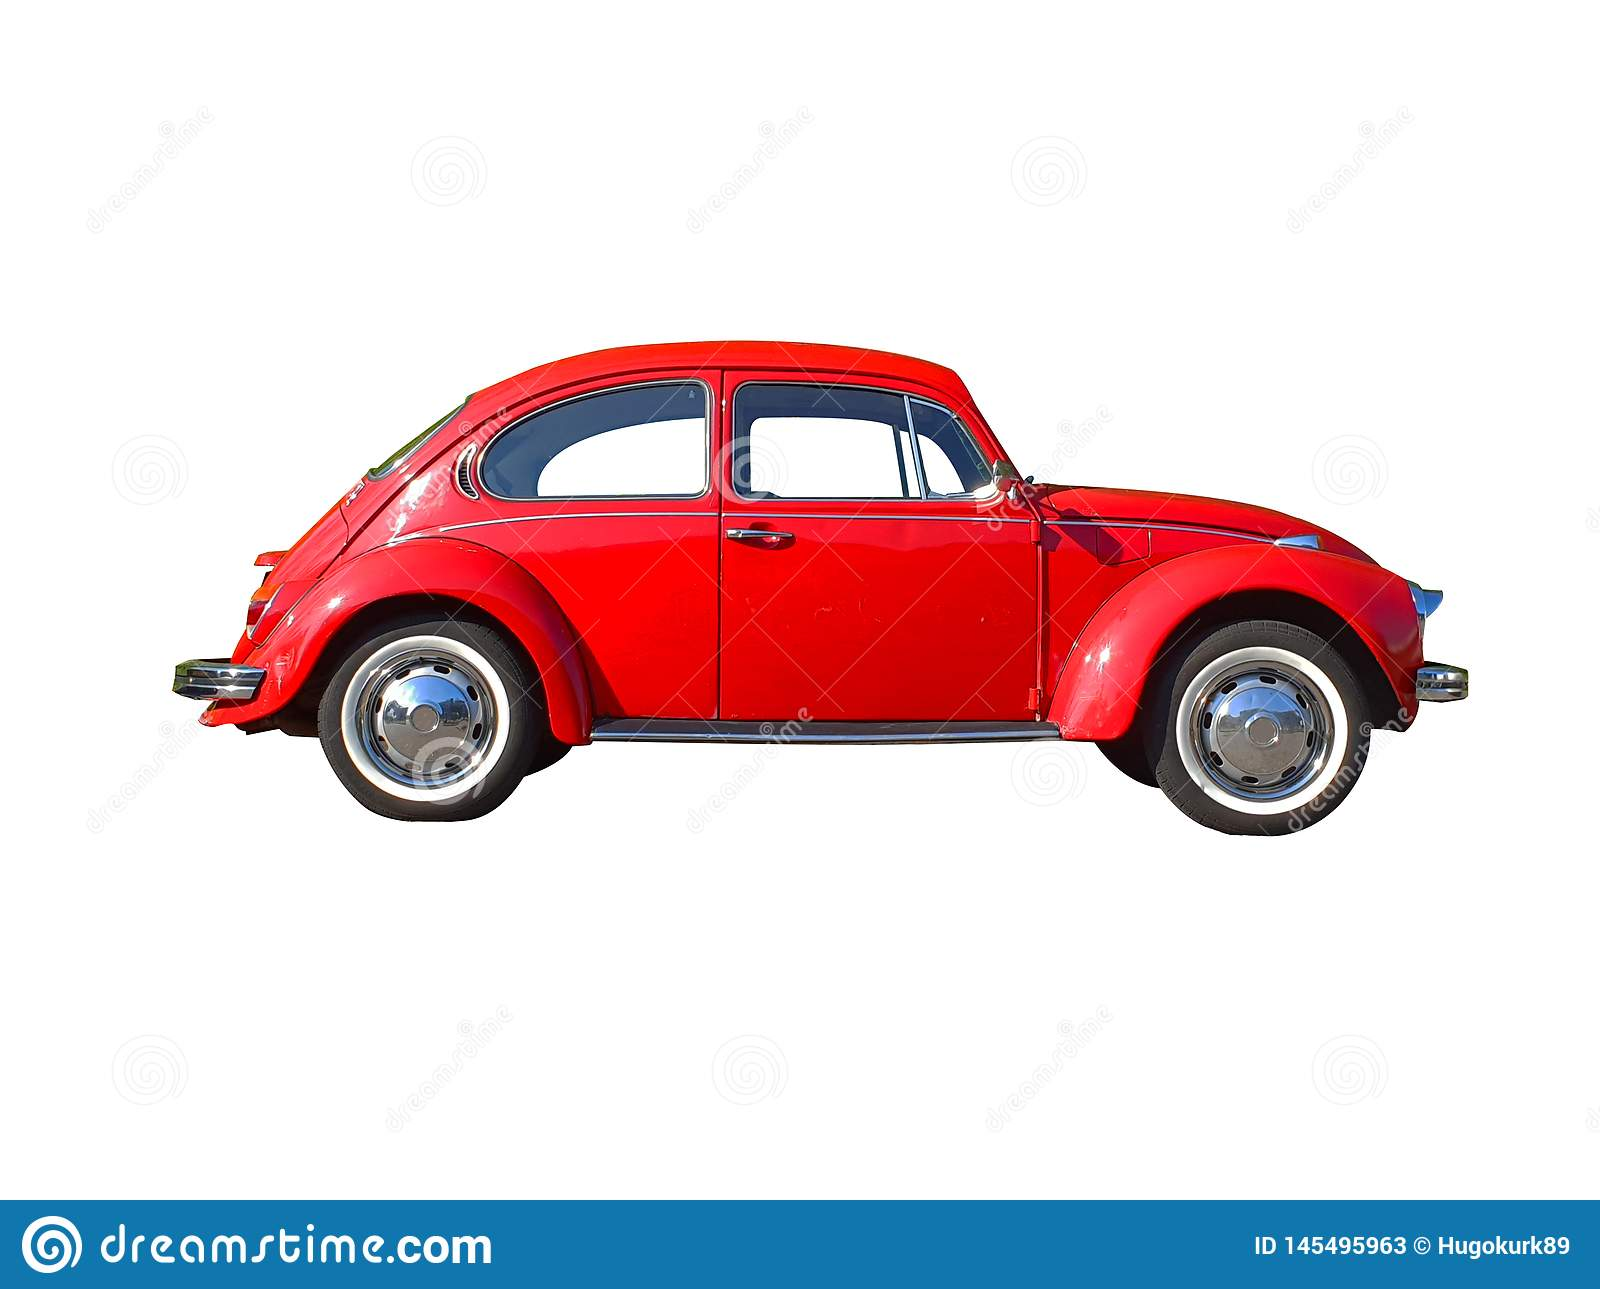 Red Beetle car isolated on black background